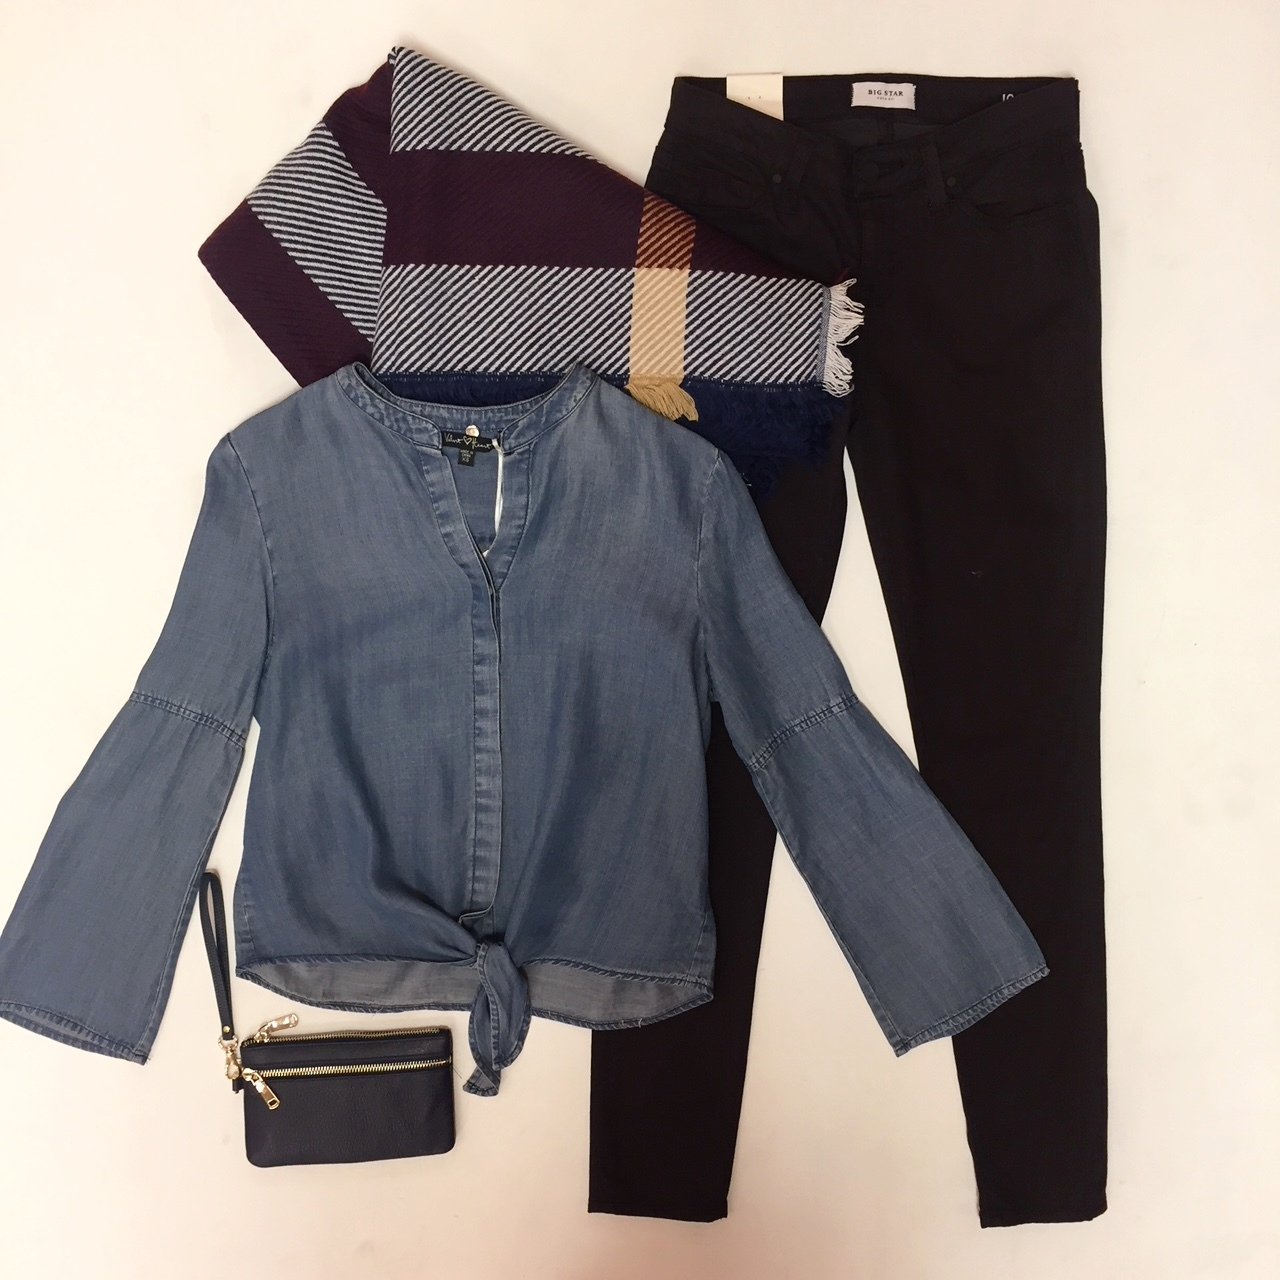 Maroon Jeans $88, Chambray Blouse $79, Wallet $28, Scarf $28